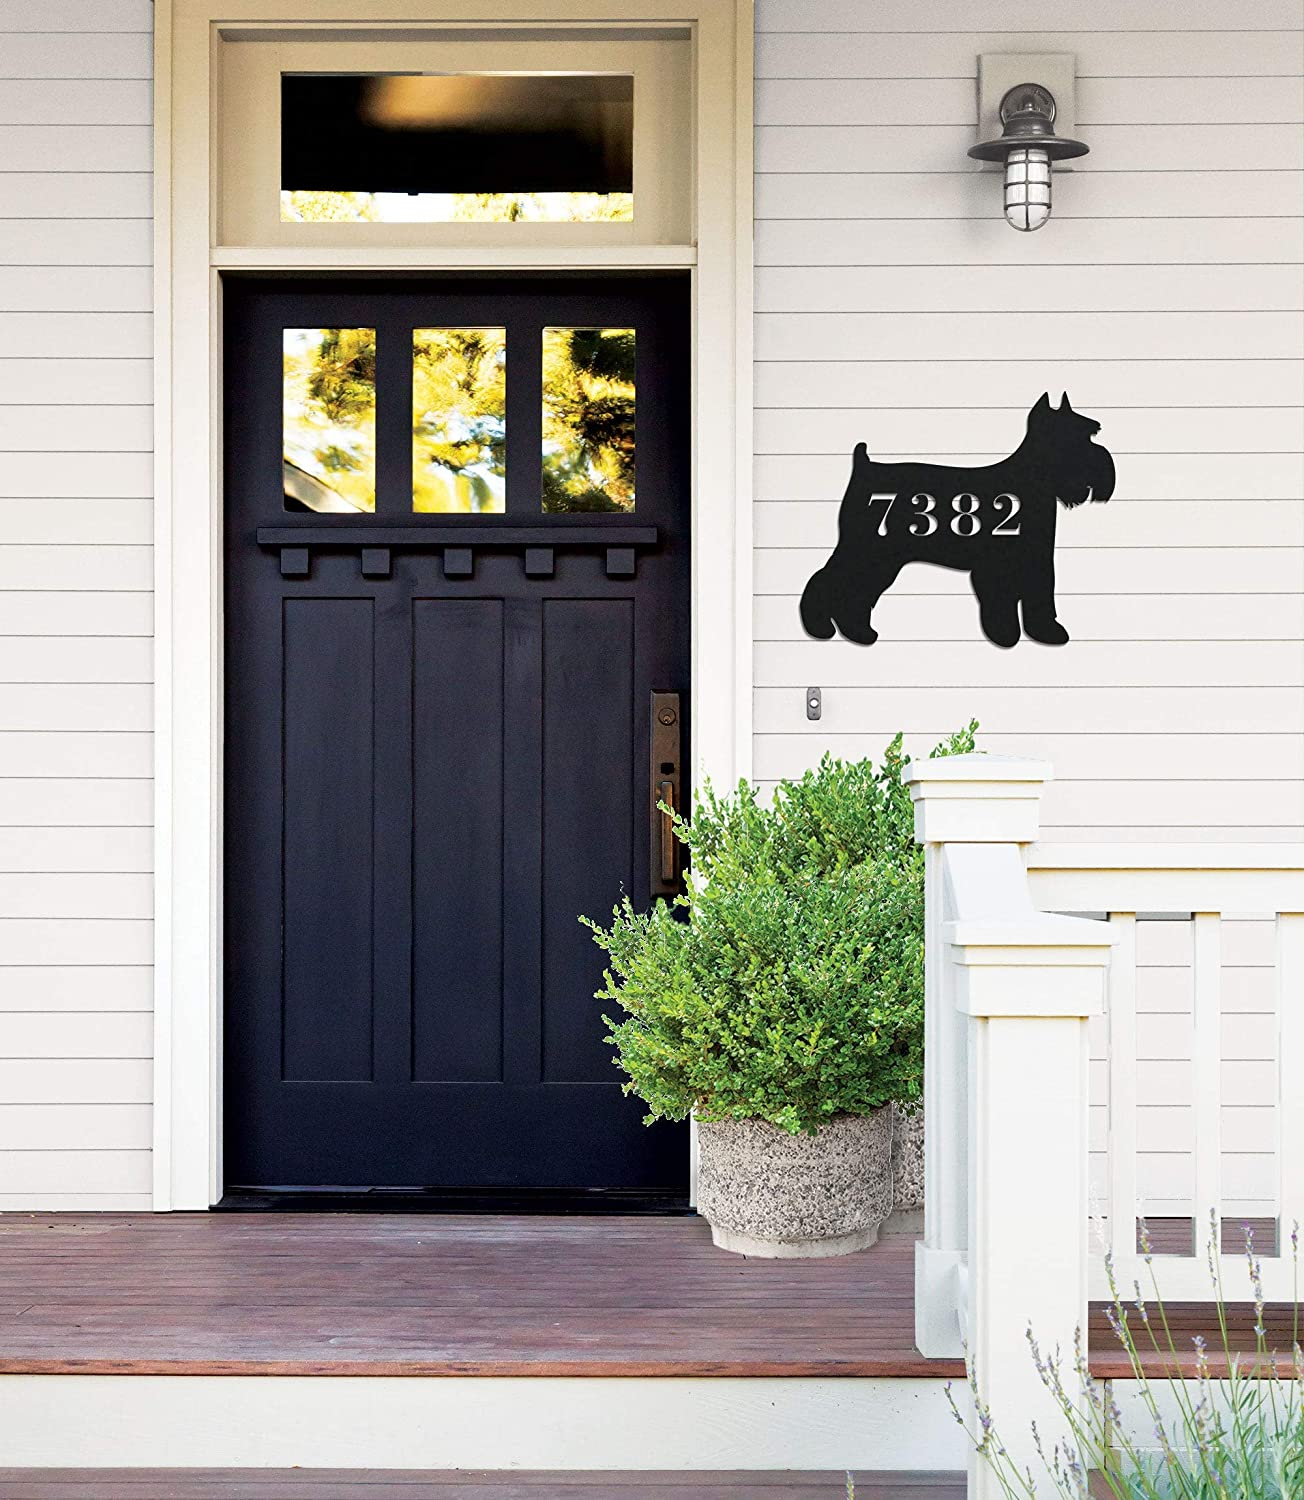 Tamengi Metal Address Sign for Wall, Schnauzer Dog Home Decor, Dog Number Sign, Outdoor Wall Metal Sign Home Decor, Address Sign SCH794